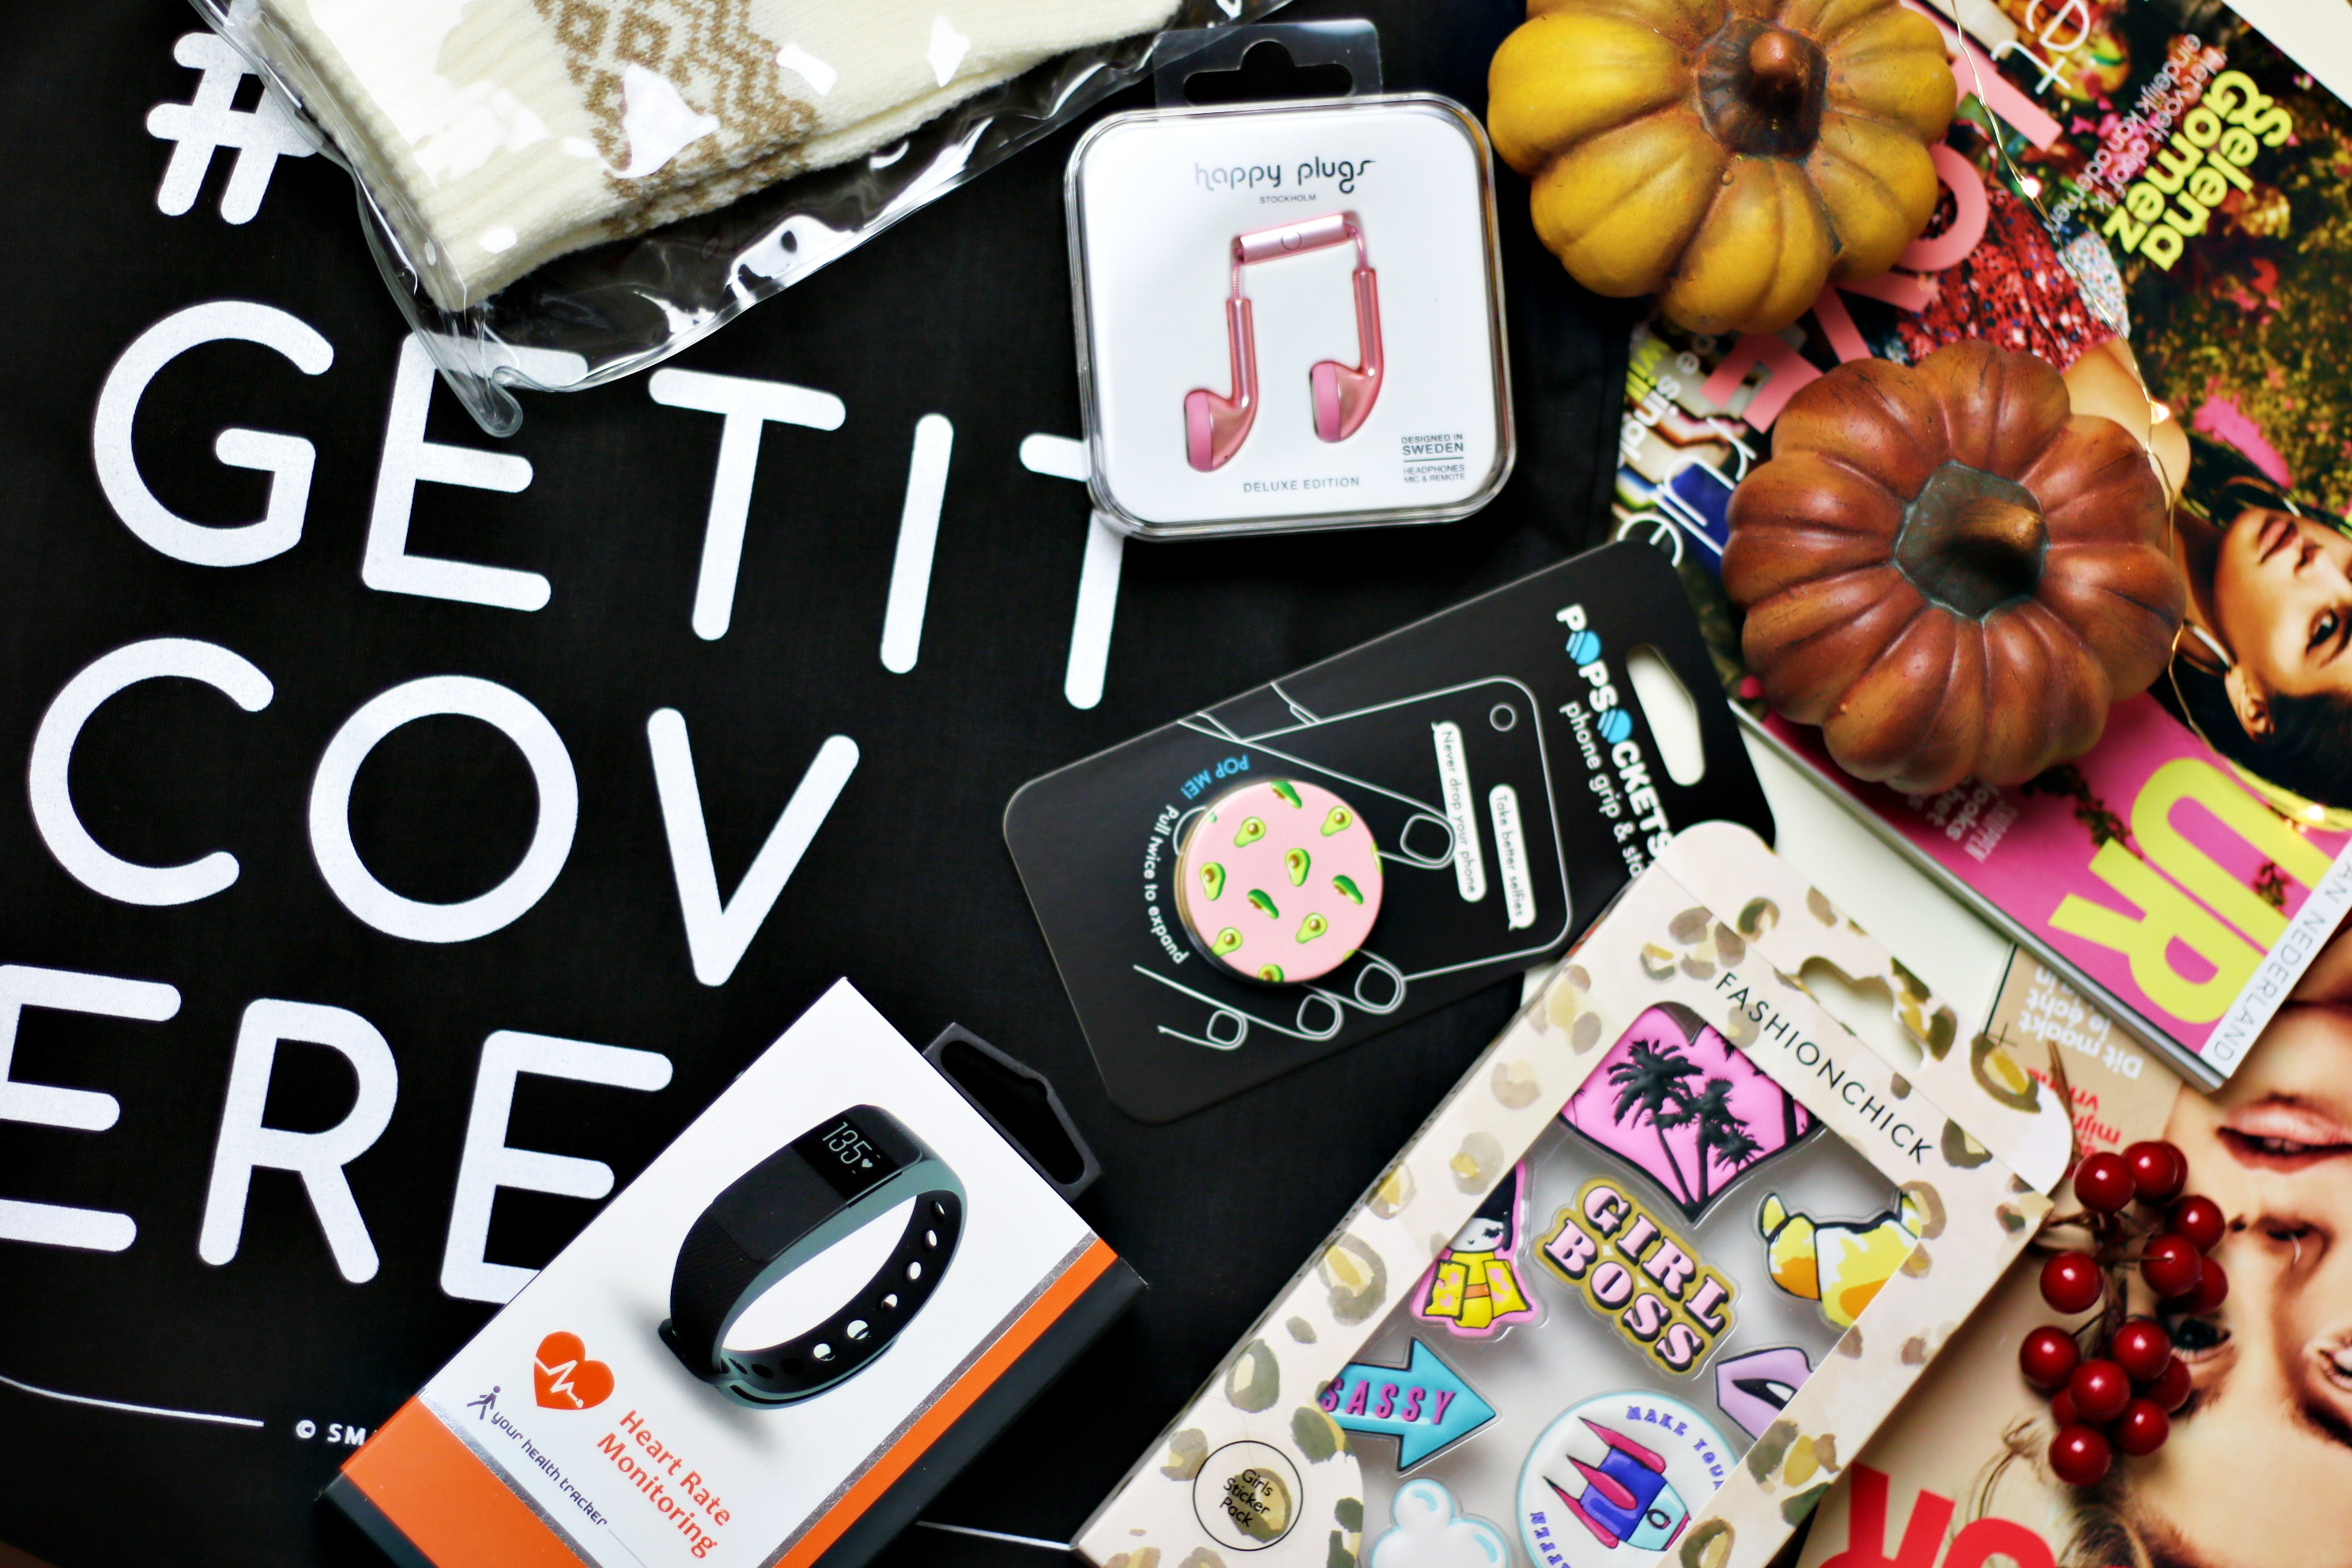 Unboxing My #GetItCovered Goodiebag!